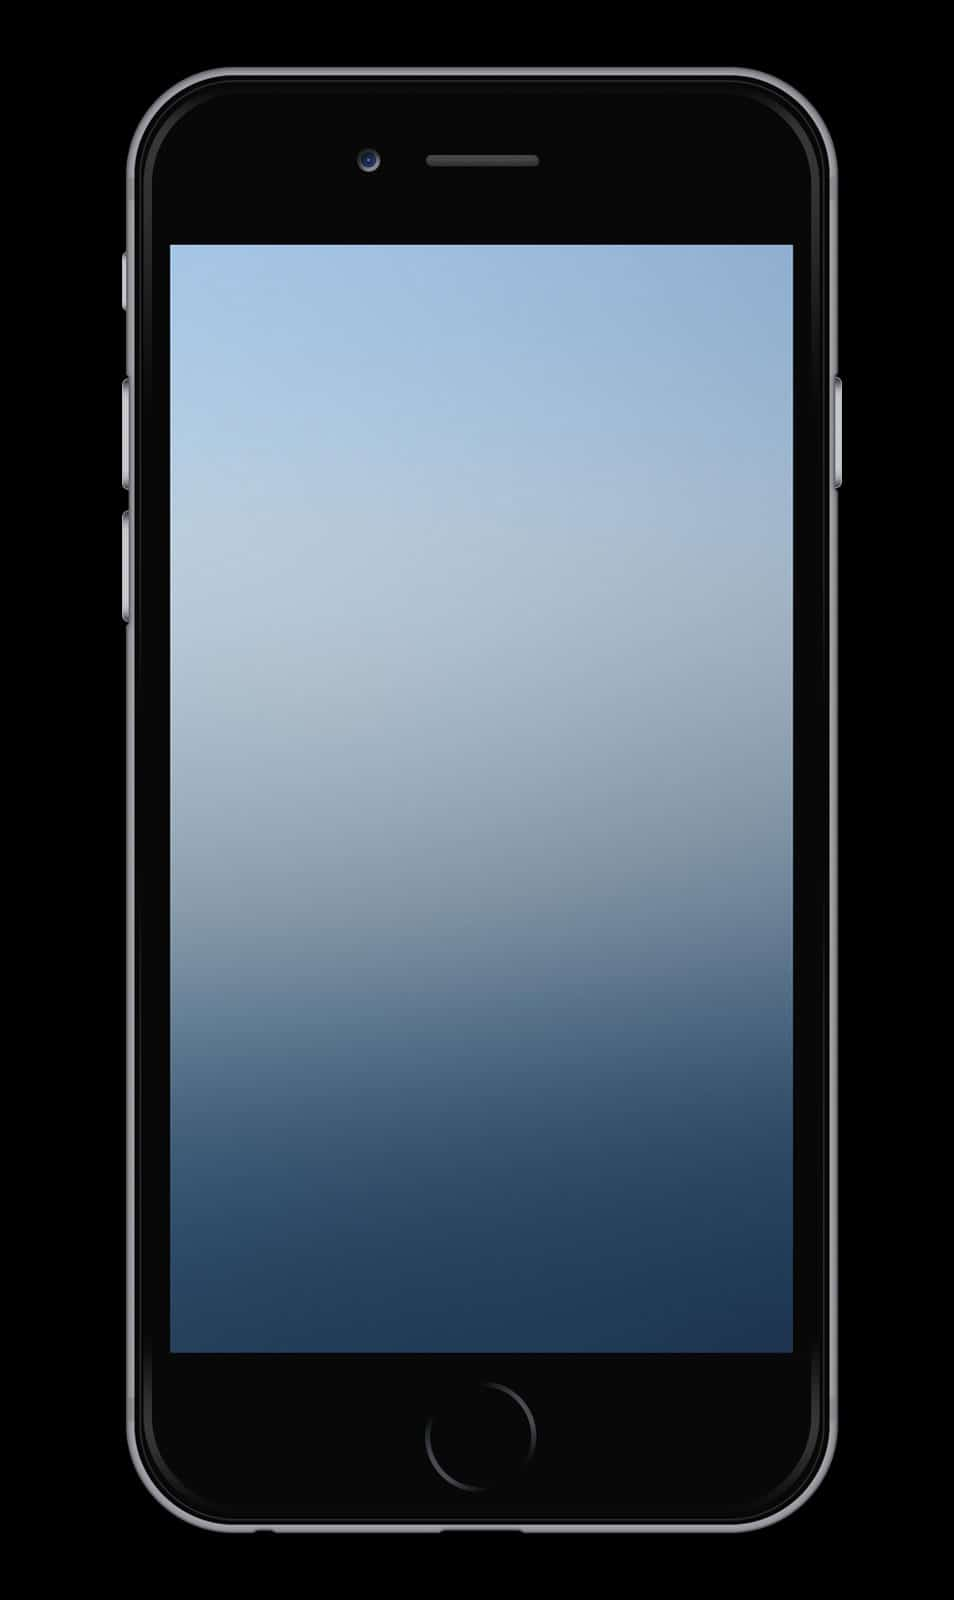 This is an image of Hilaire Printable Iphone Template